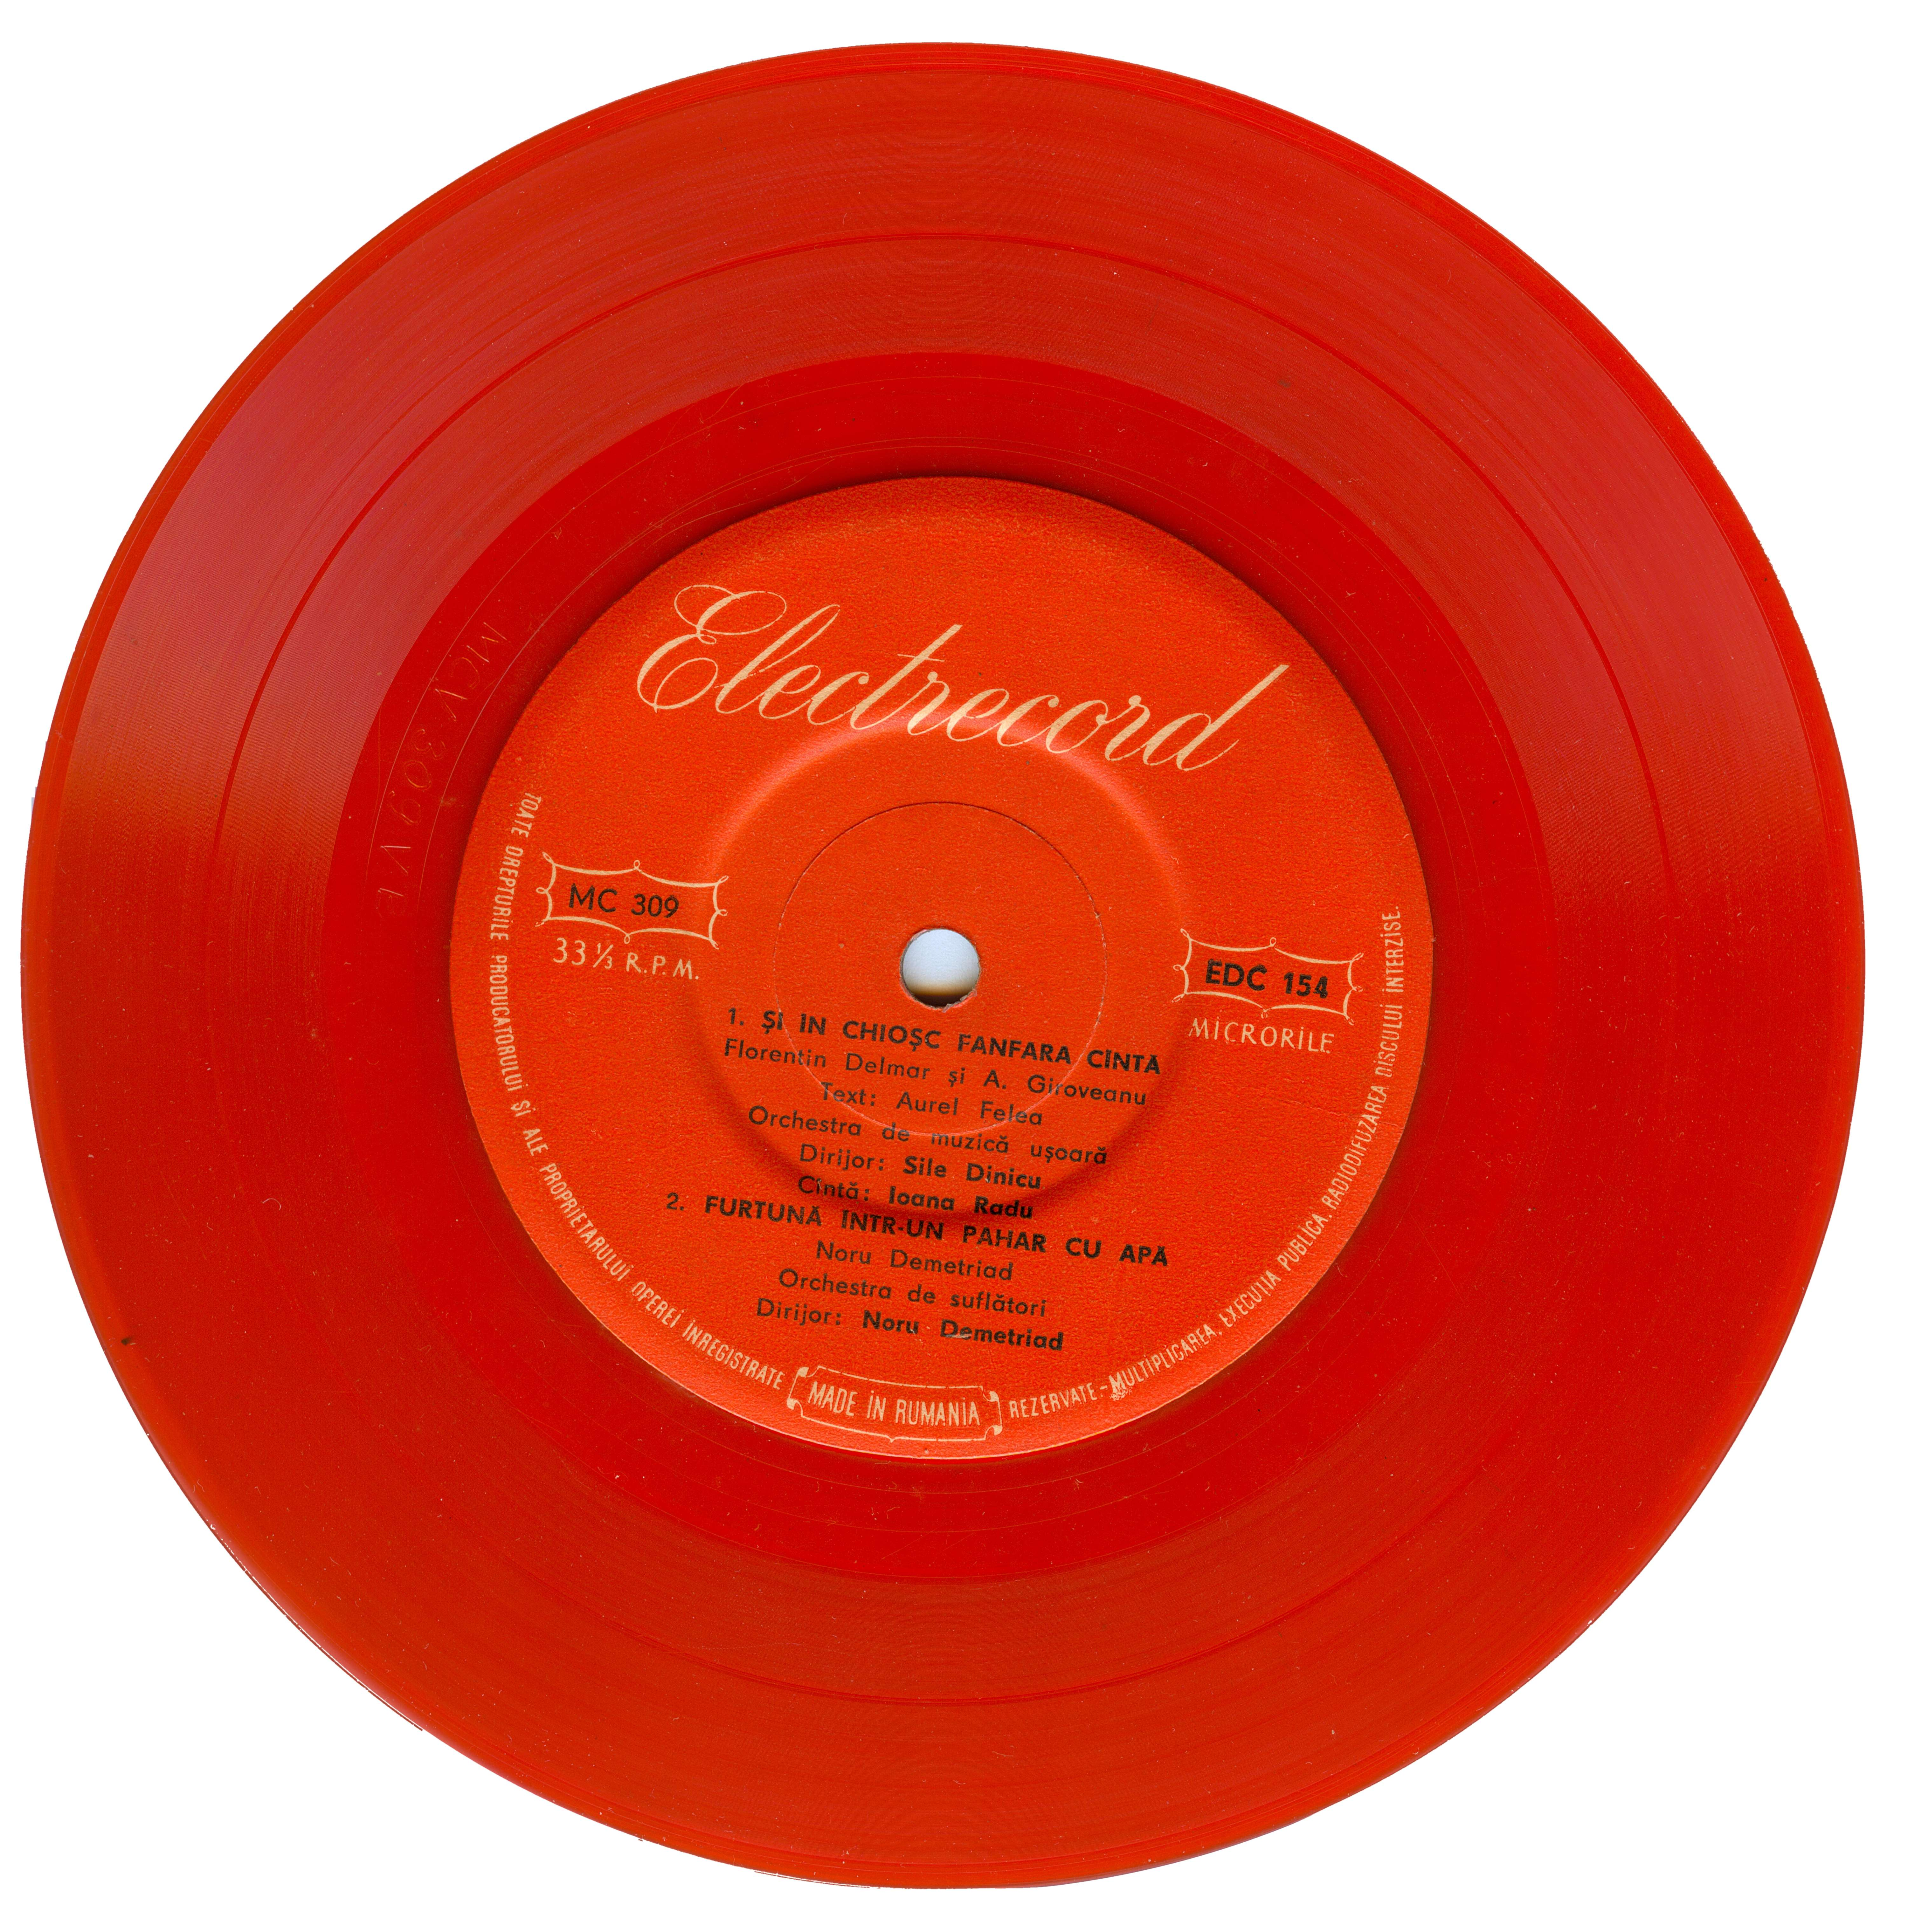 Description Electrecord Red Vinyl Record.jpg